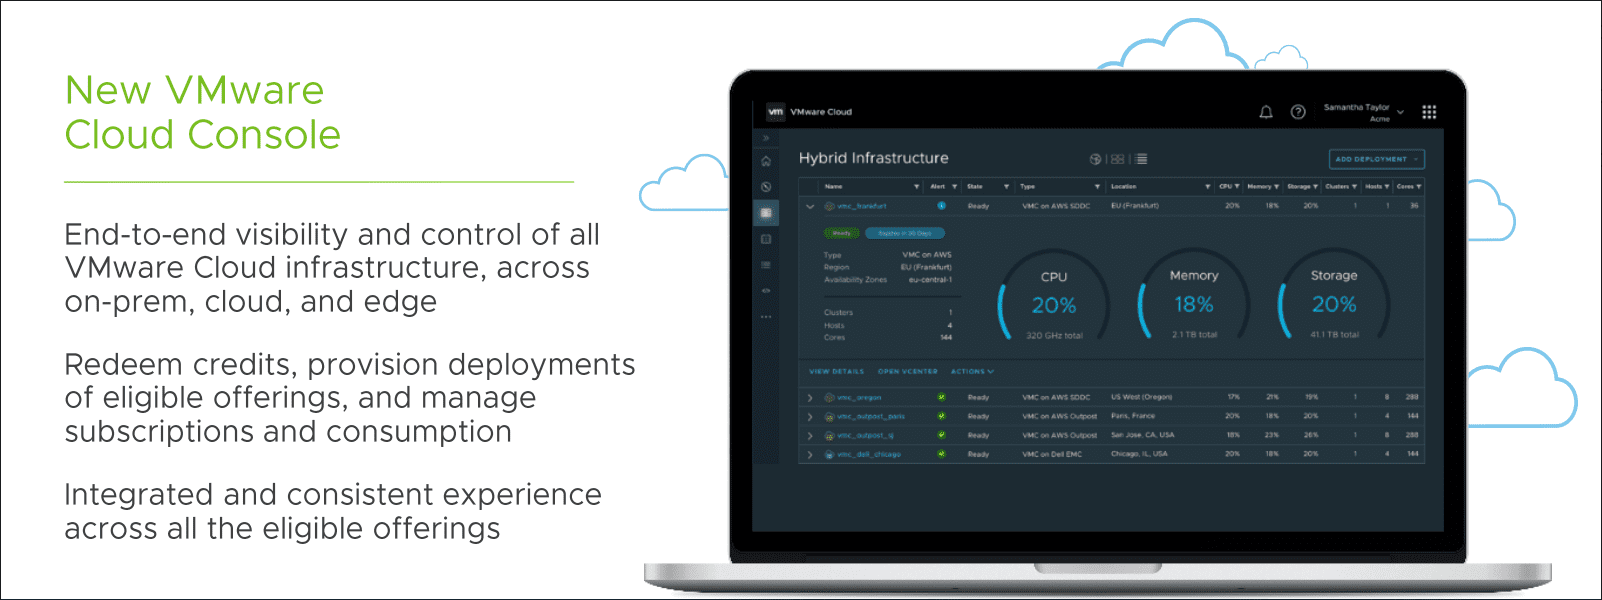 New vmware cloud console offering